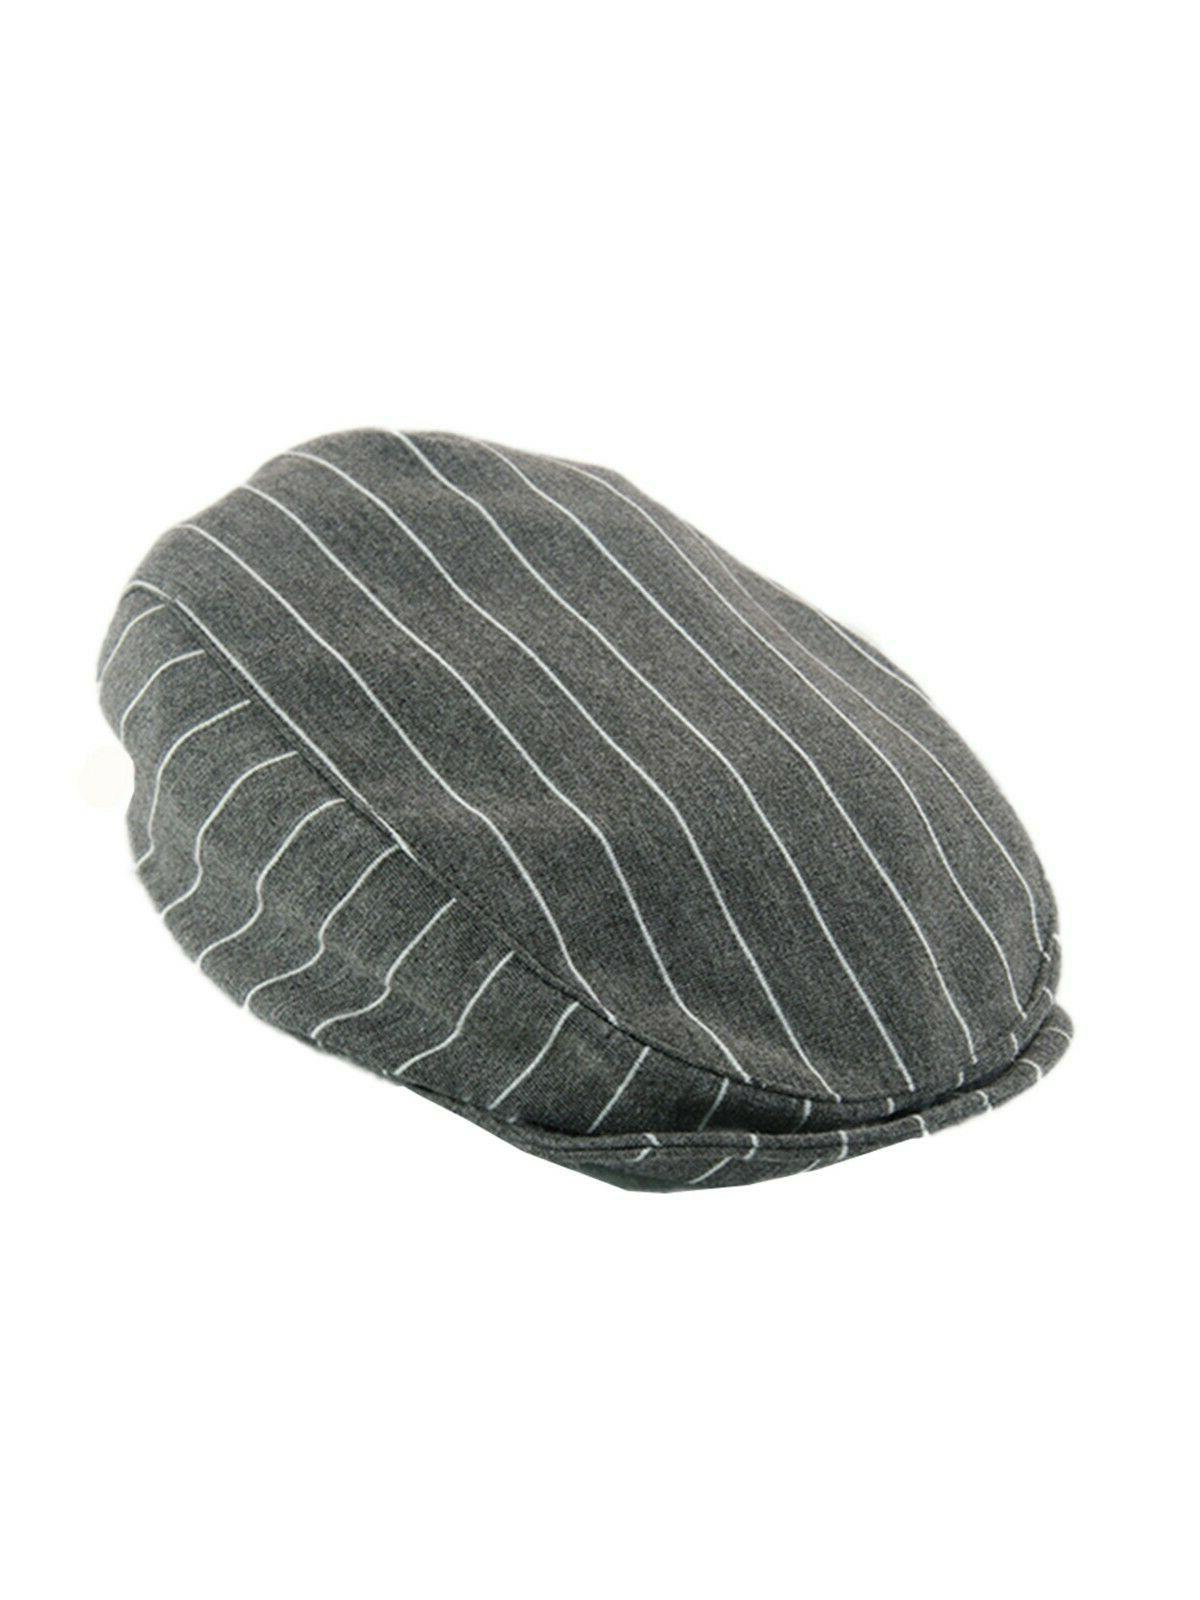 handsome classic hat for baby infant boy